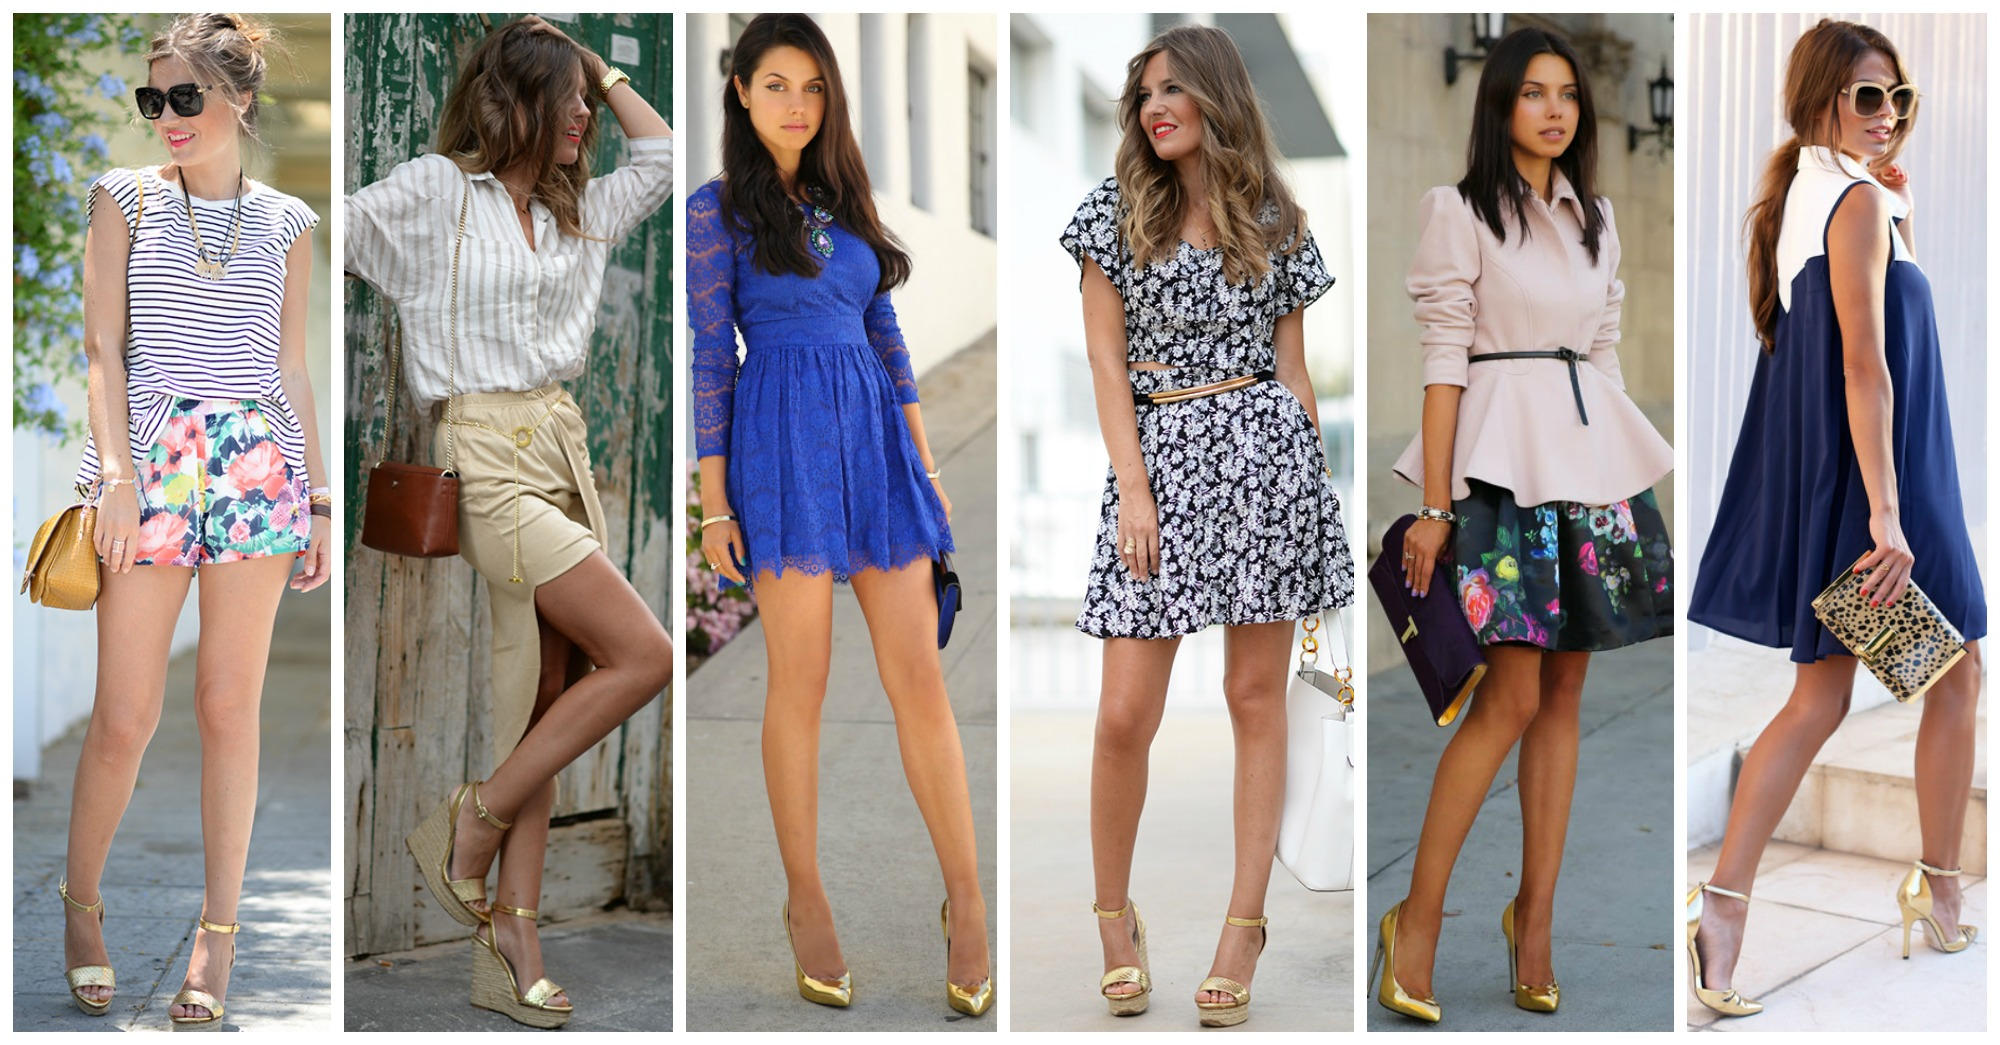 11 Chic Outfits with Golden Shoes for Any Occasion